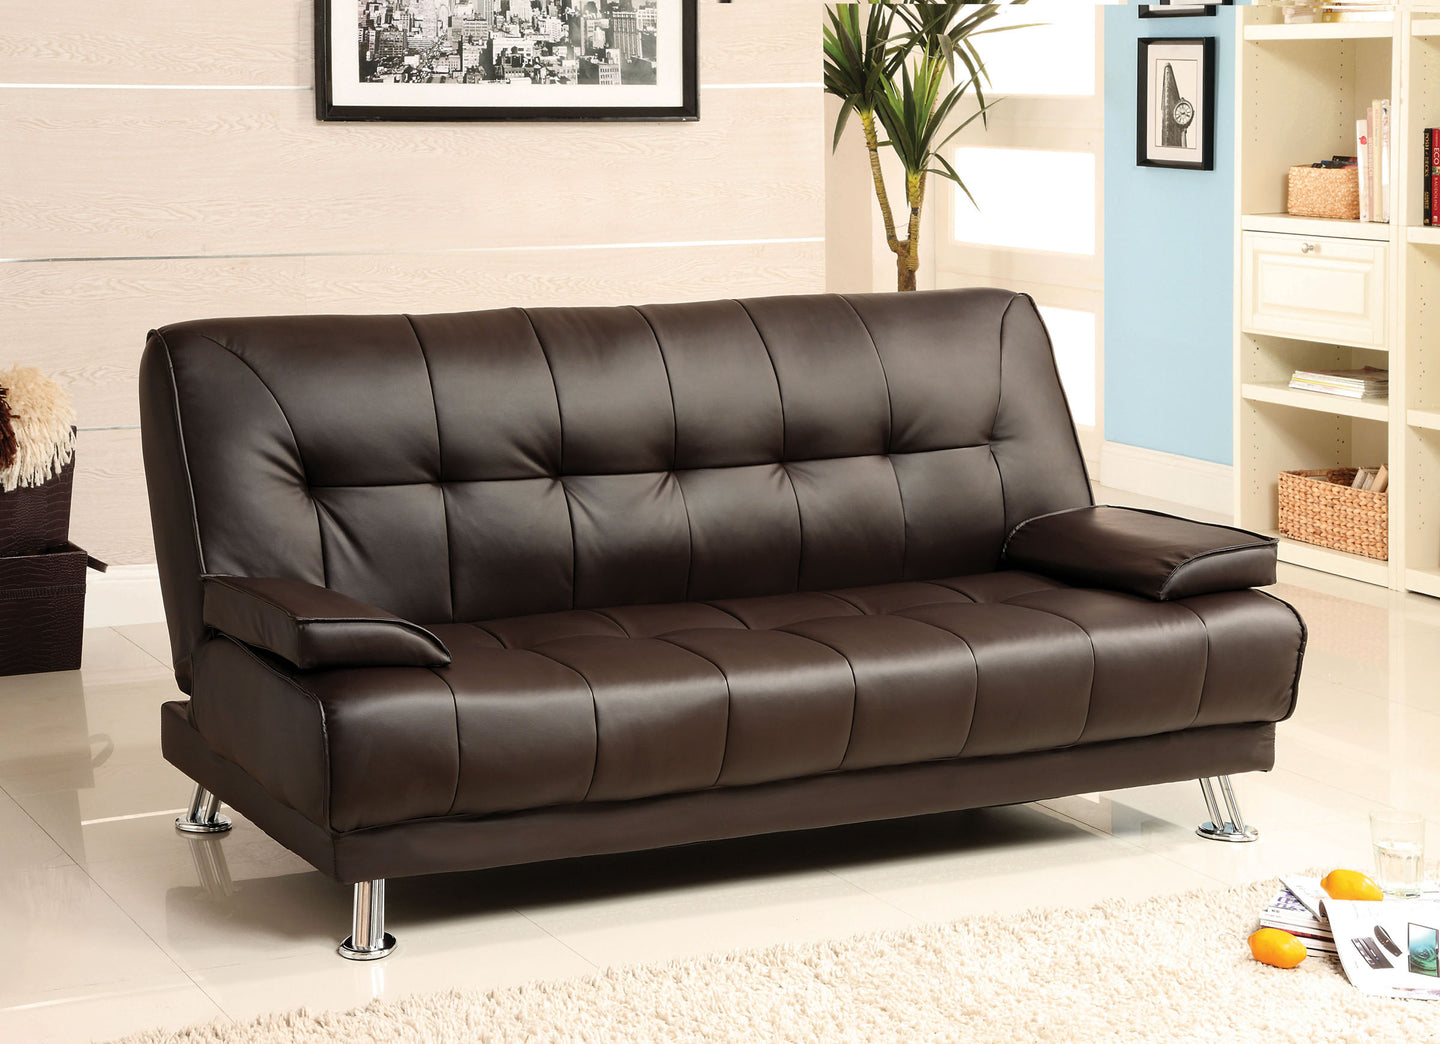 Beaumont CM2100 Dark Brown Leatherette Futon Sofa Bed